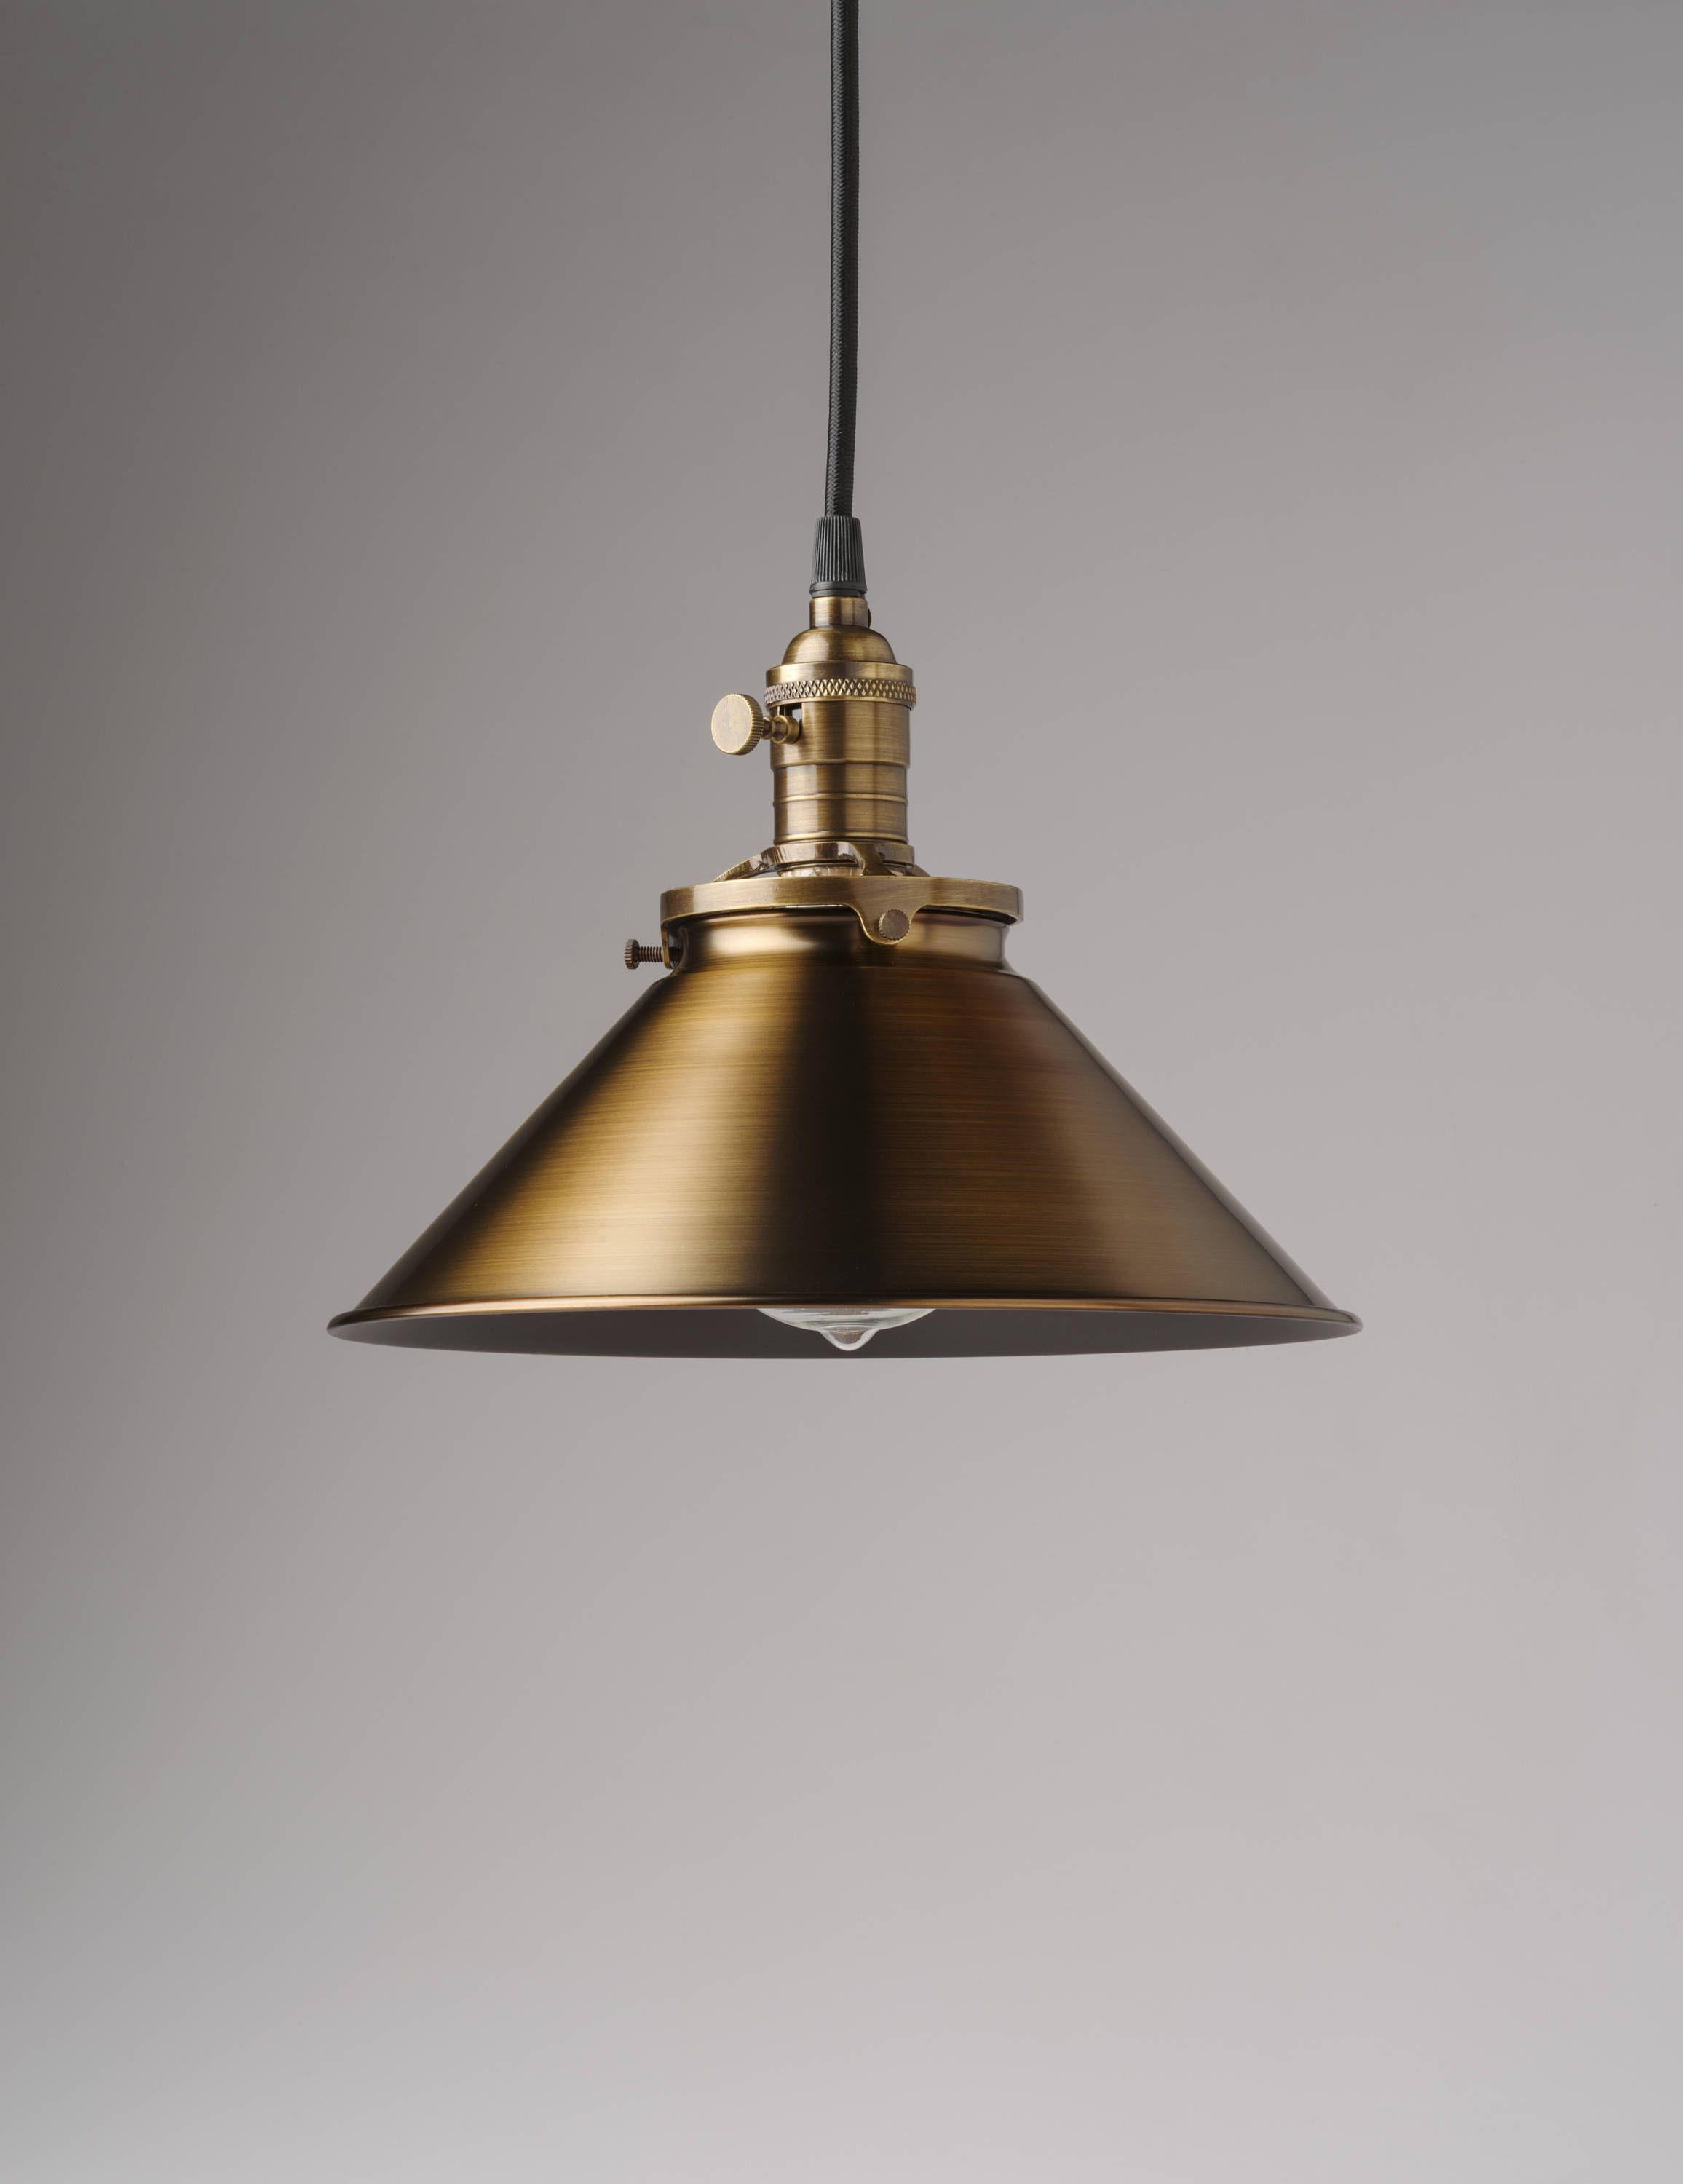 edison fixtures lamp genius lights light most bulb commercial ceiling lighting marvelous table industrial looking pendant